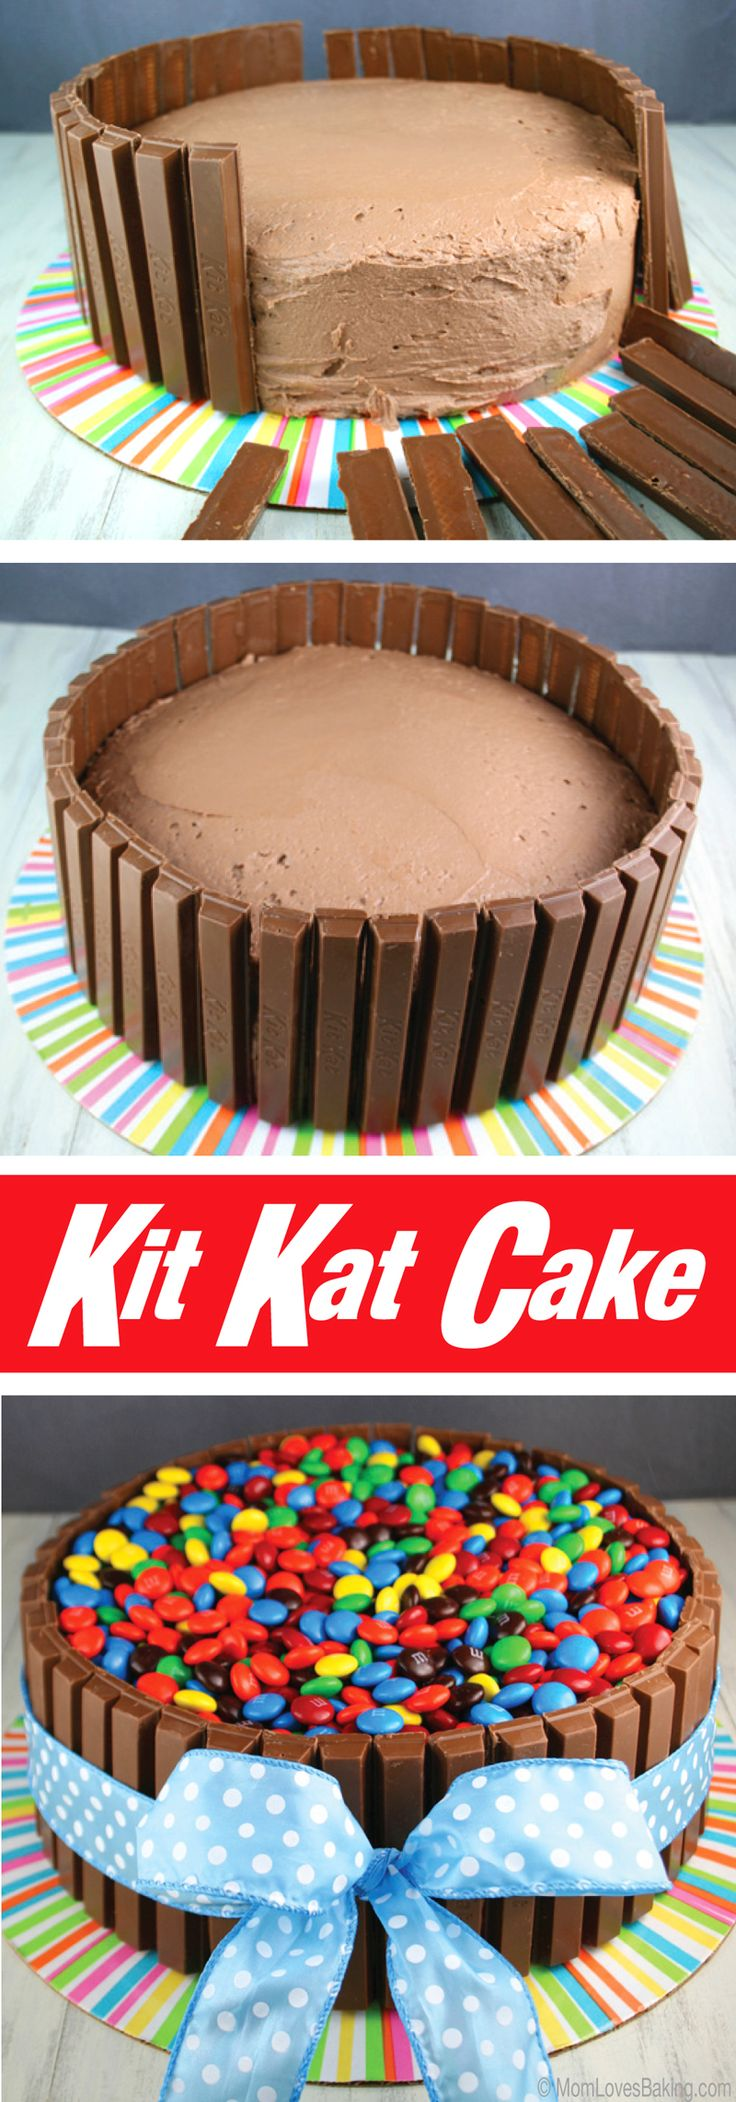 A chocolate frosted chocolate layer cake, surrounded by over 40 Kit Kat bars, topped with 2 large bags of M&M's and wrapped with a beautiful ribbon that's tied in a bow. #Tutorial